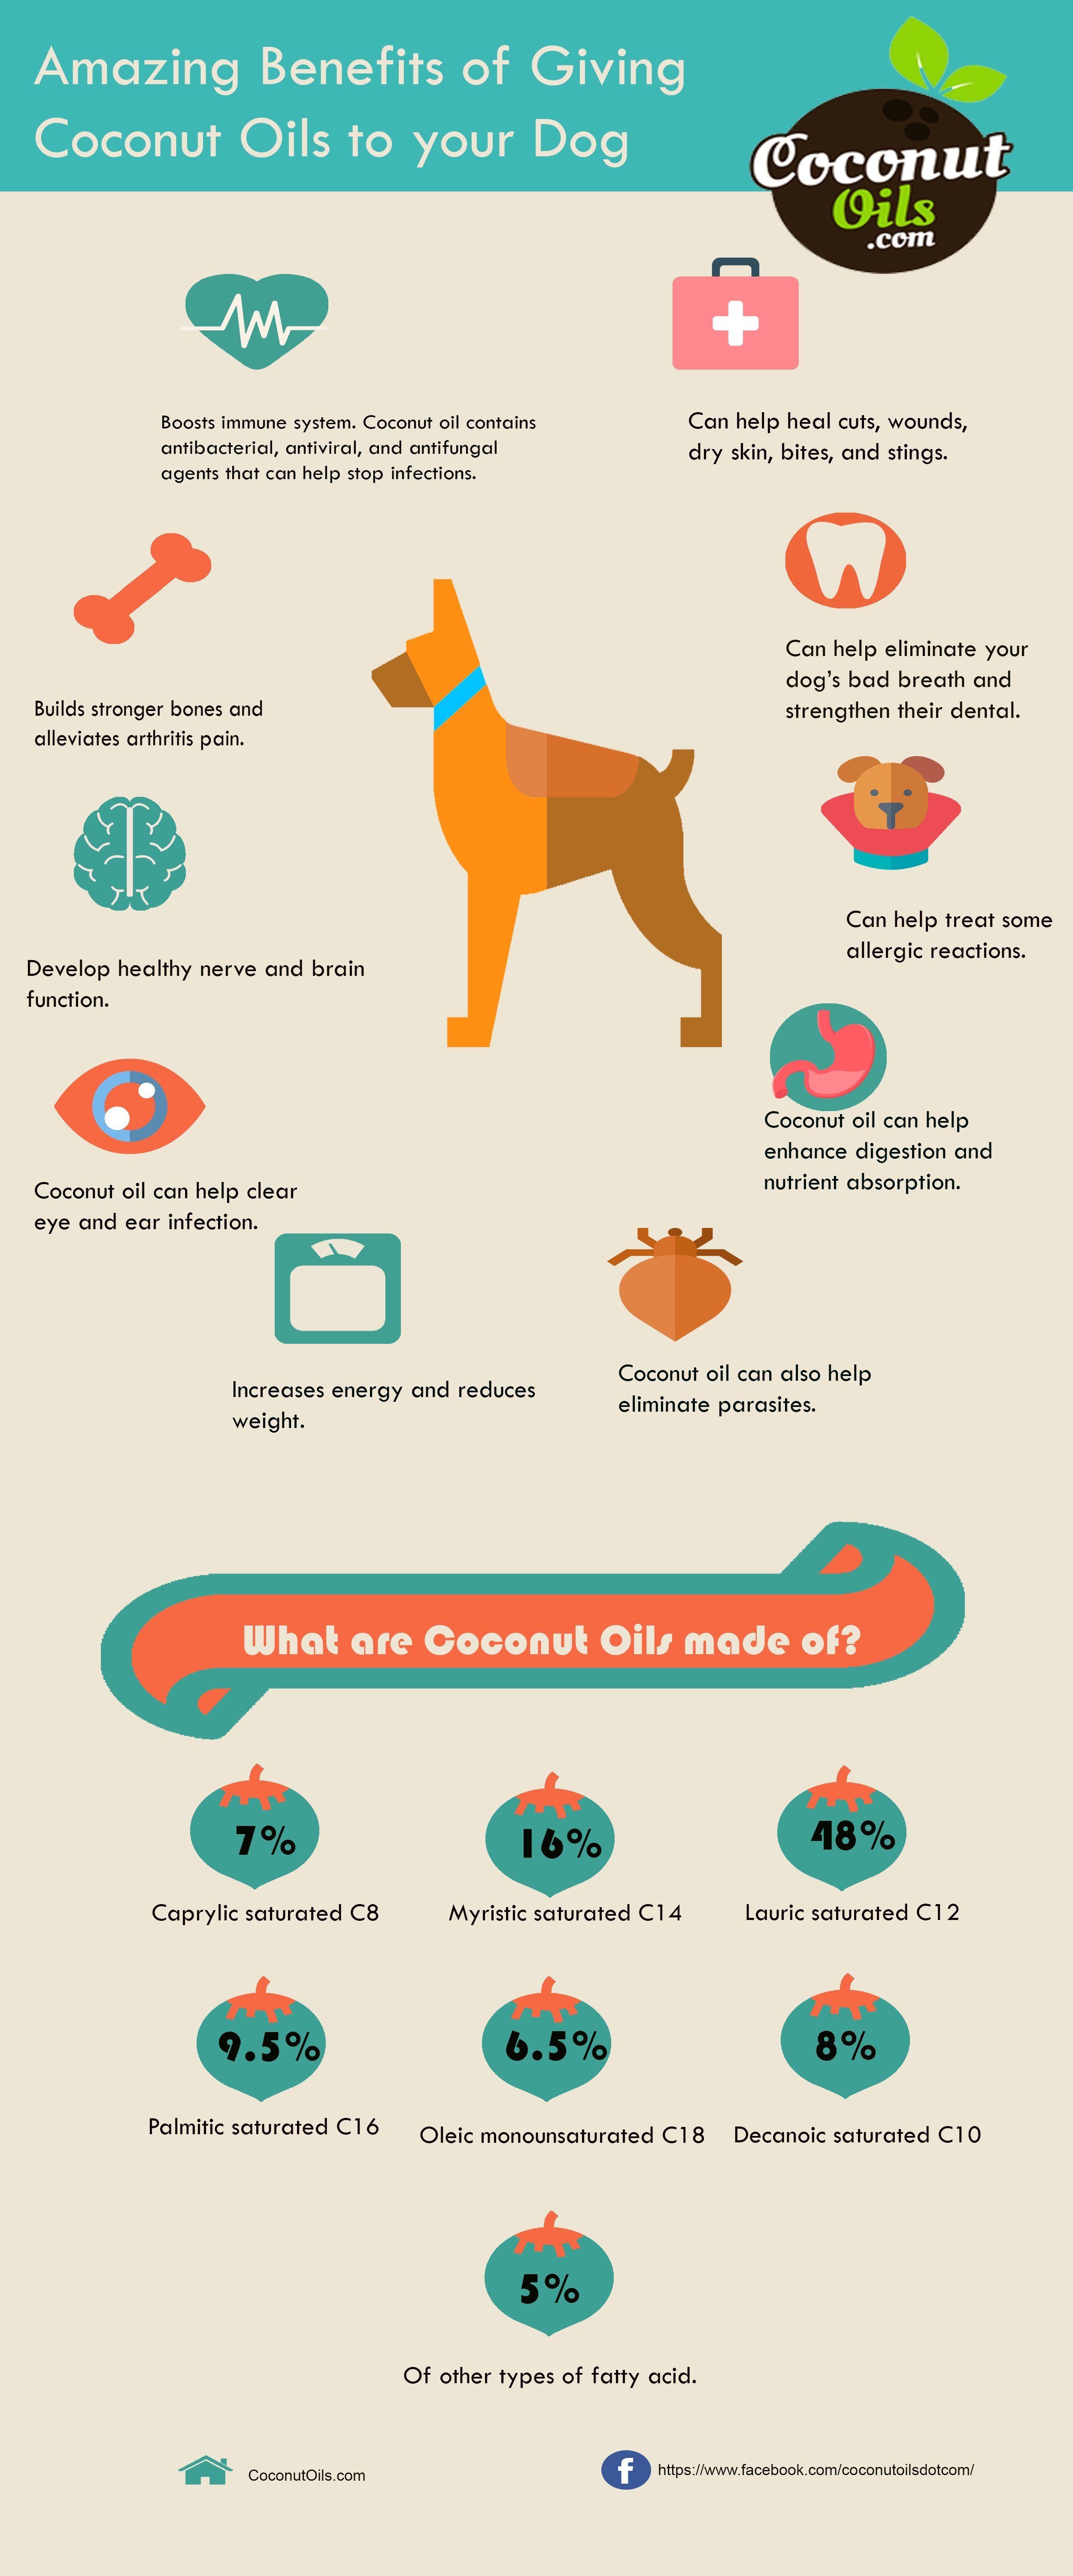 Amazing Benefits of Coconut Oil to your Dogs